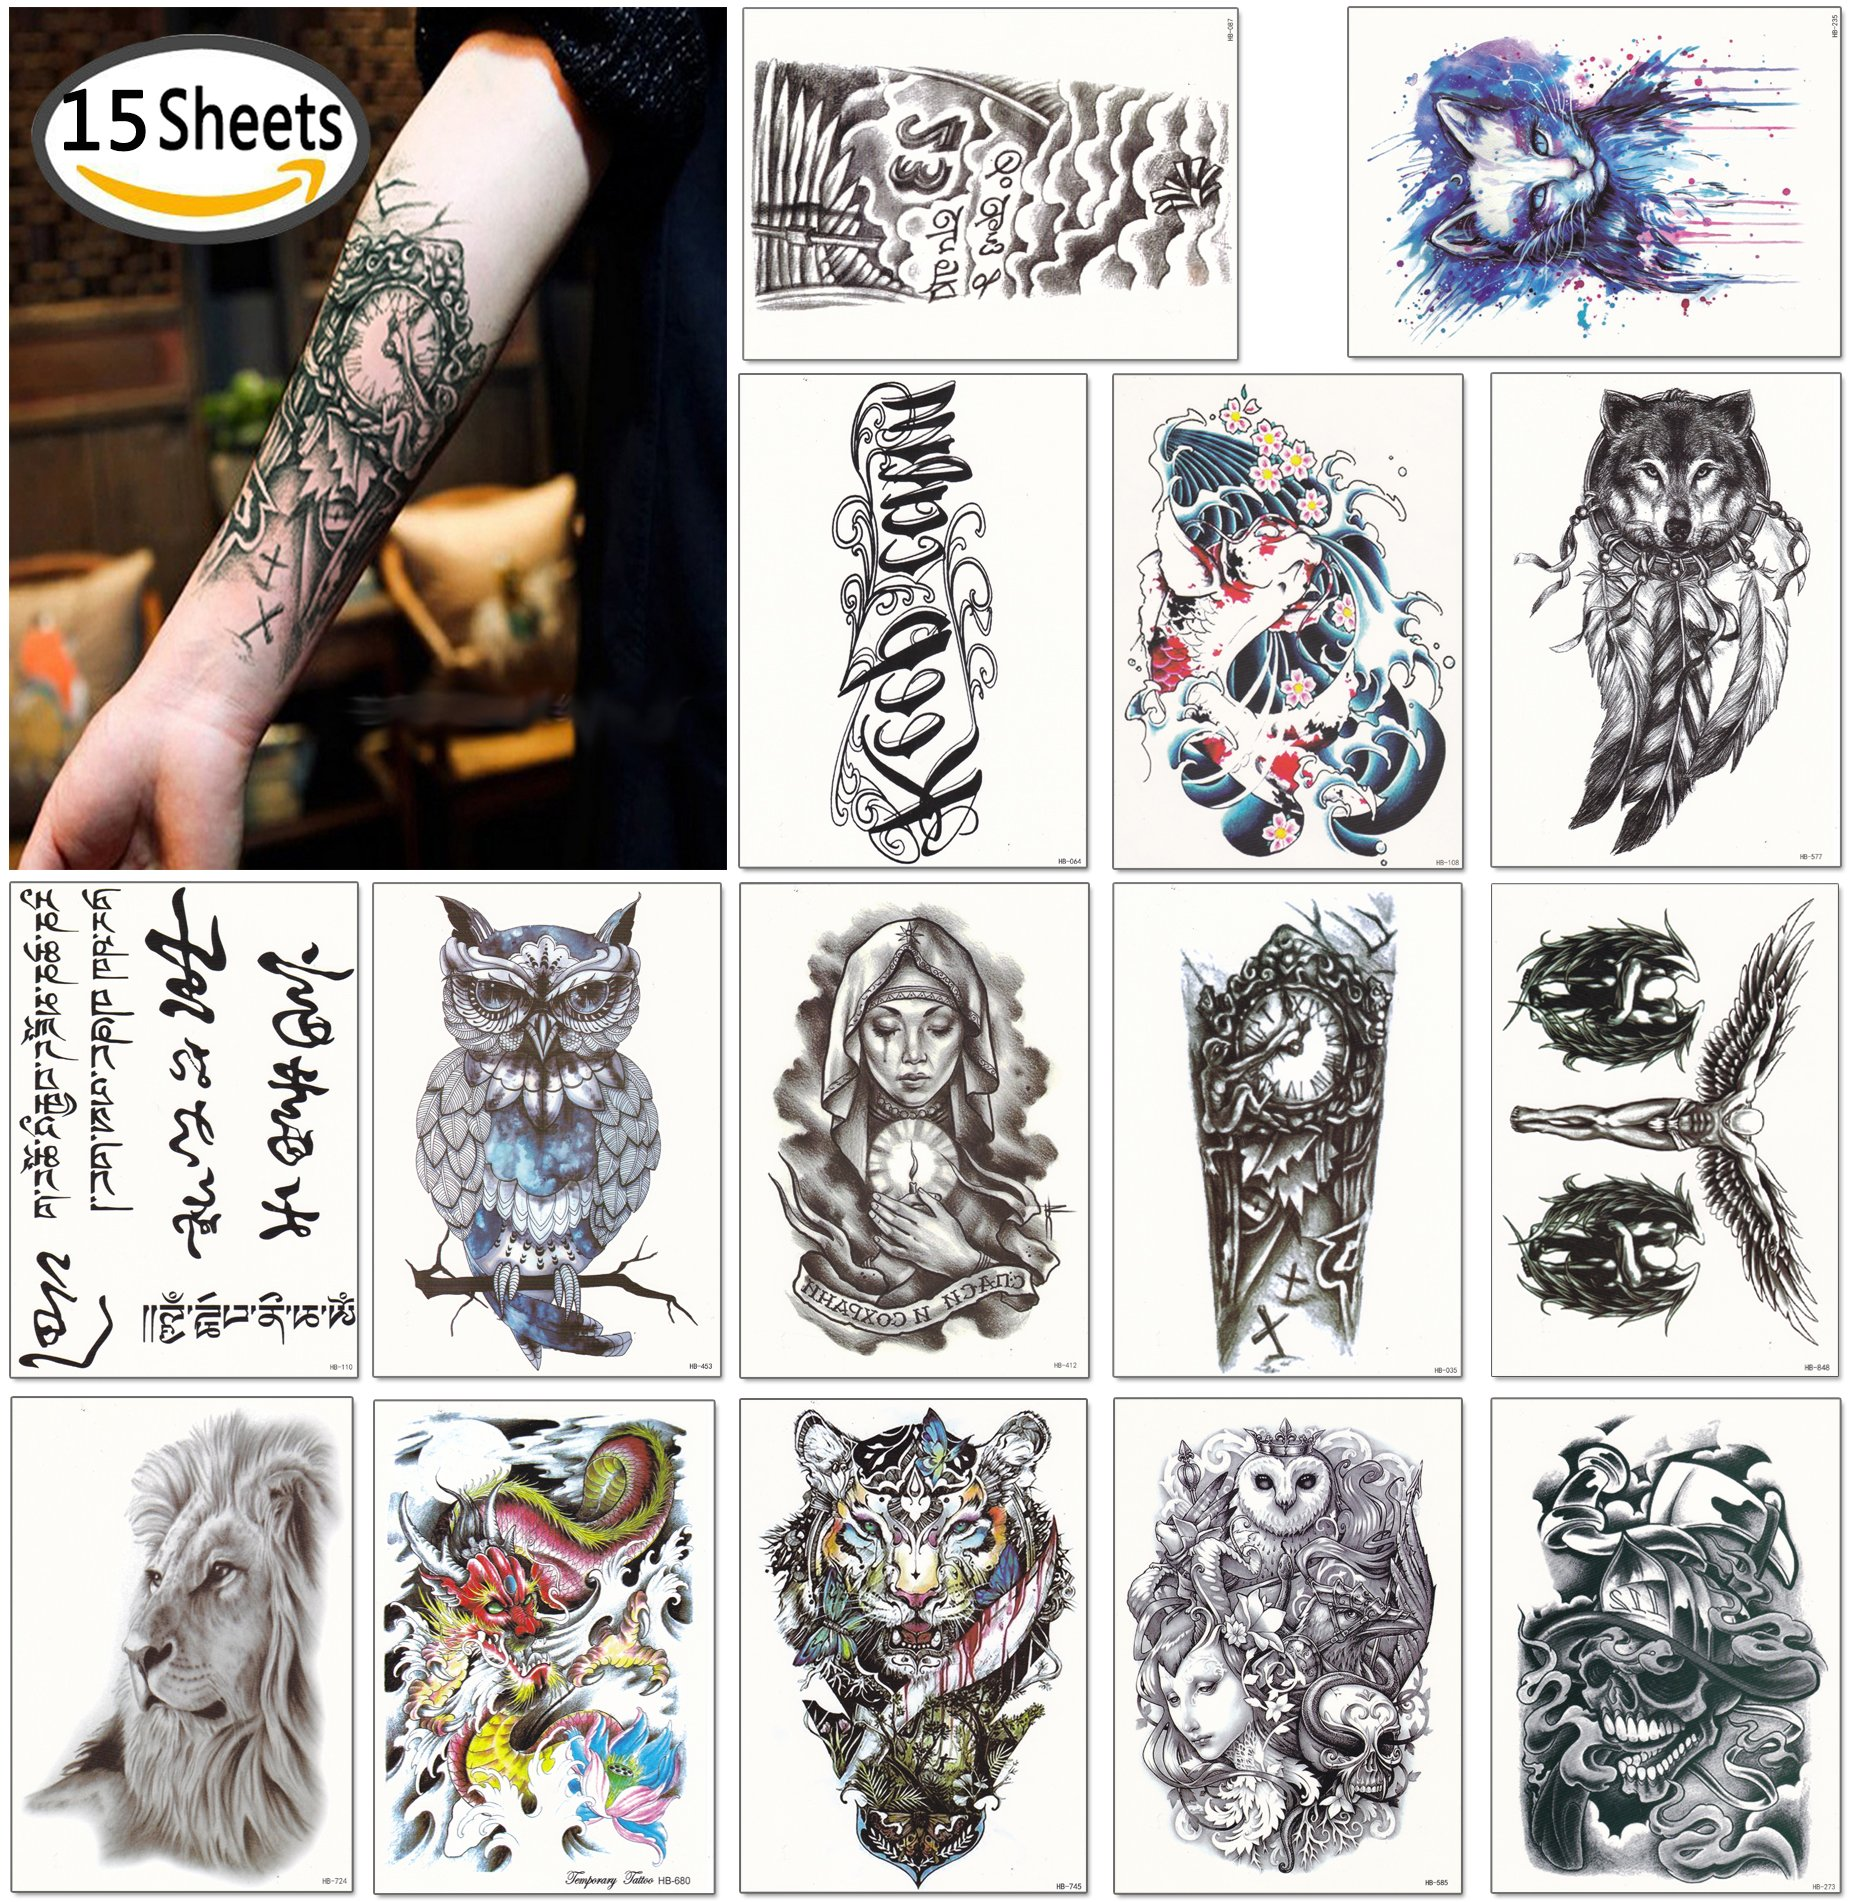 067d1a7d1 Get Quotations · DaLin Large Temporary Tattoos Half Arm Tattoo Sleeves 15  Sheets, Robot Arm, Dead Skull